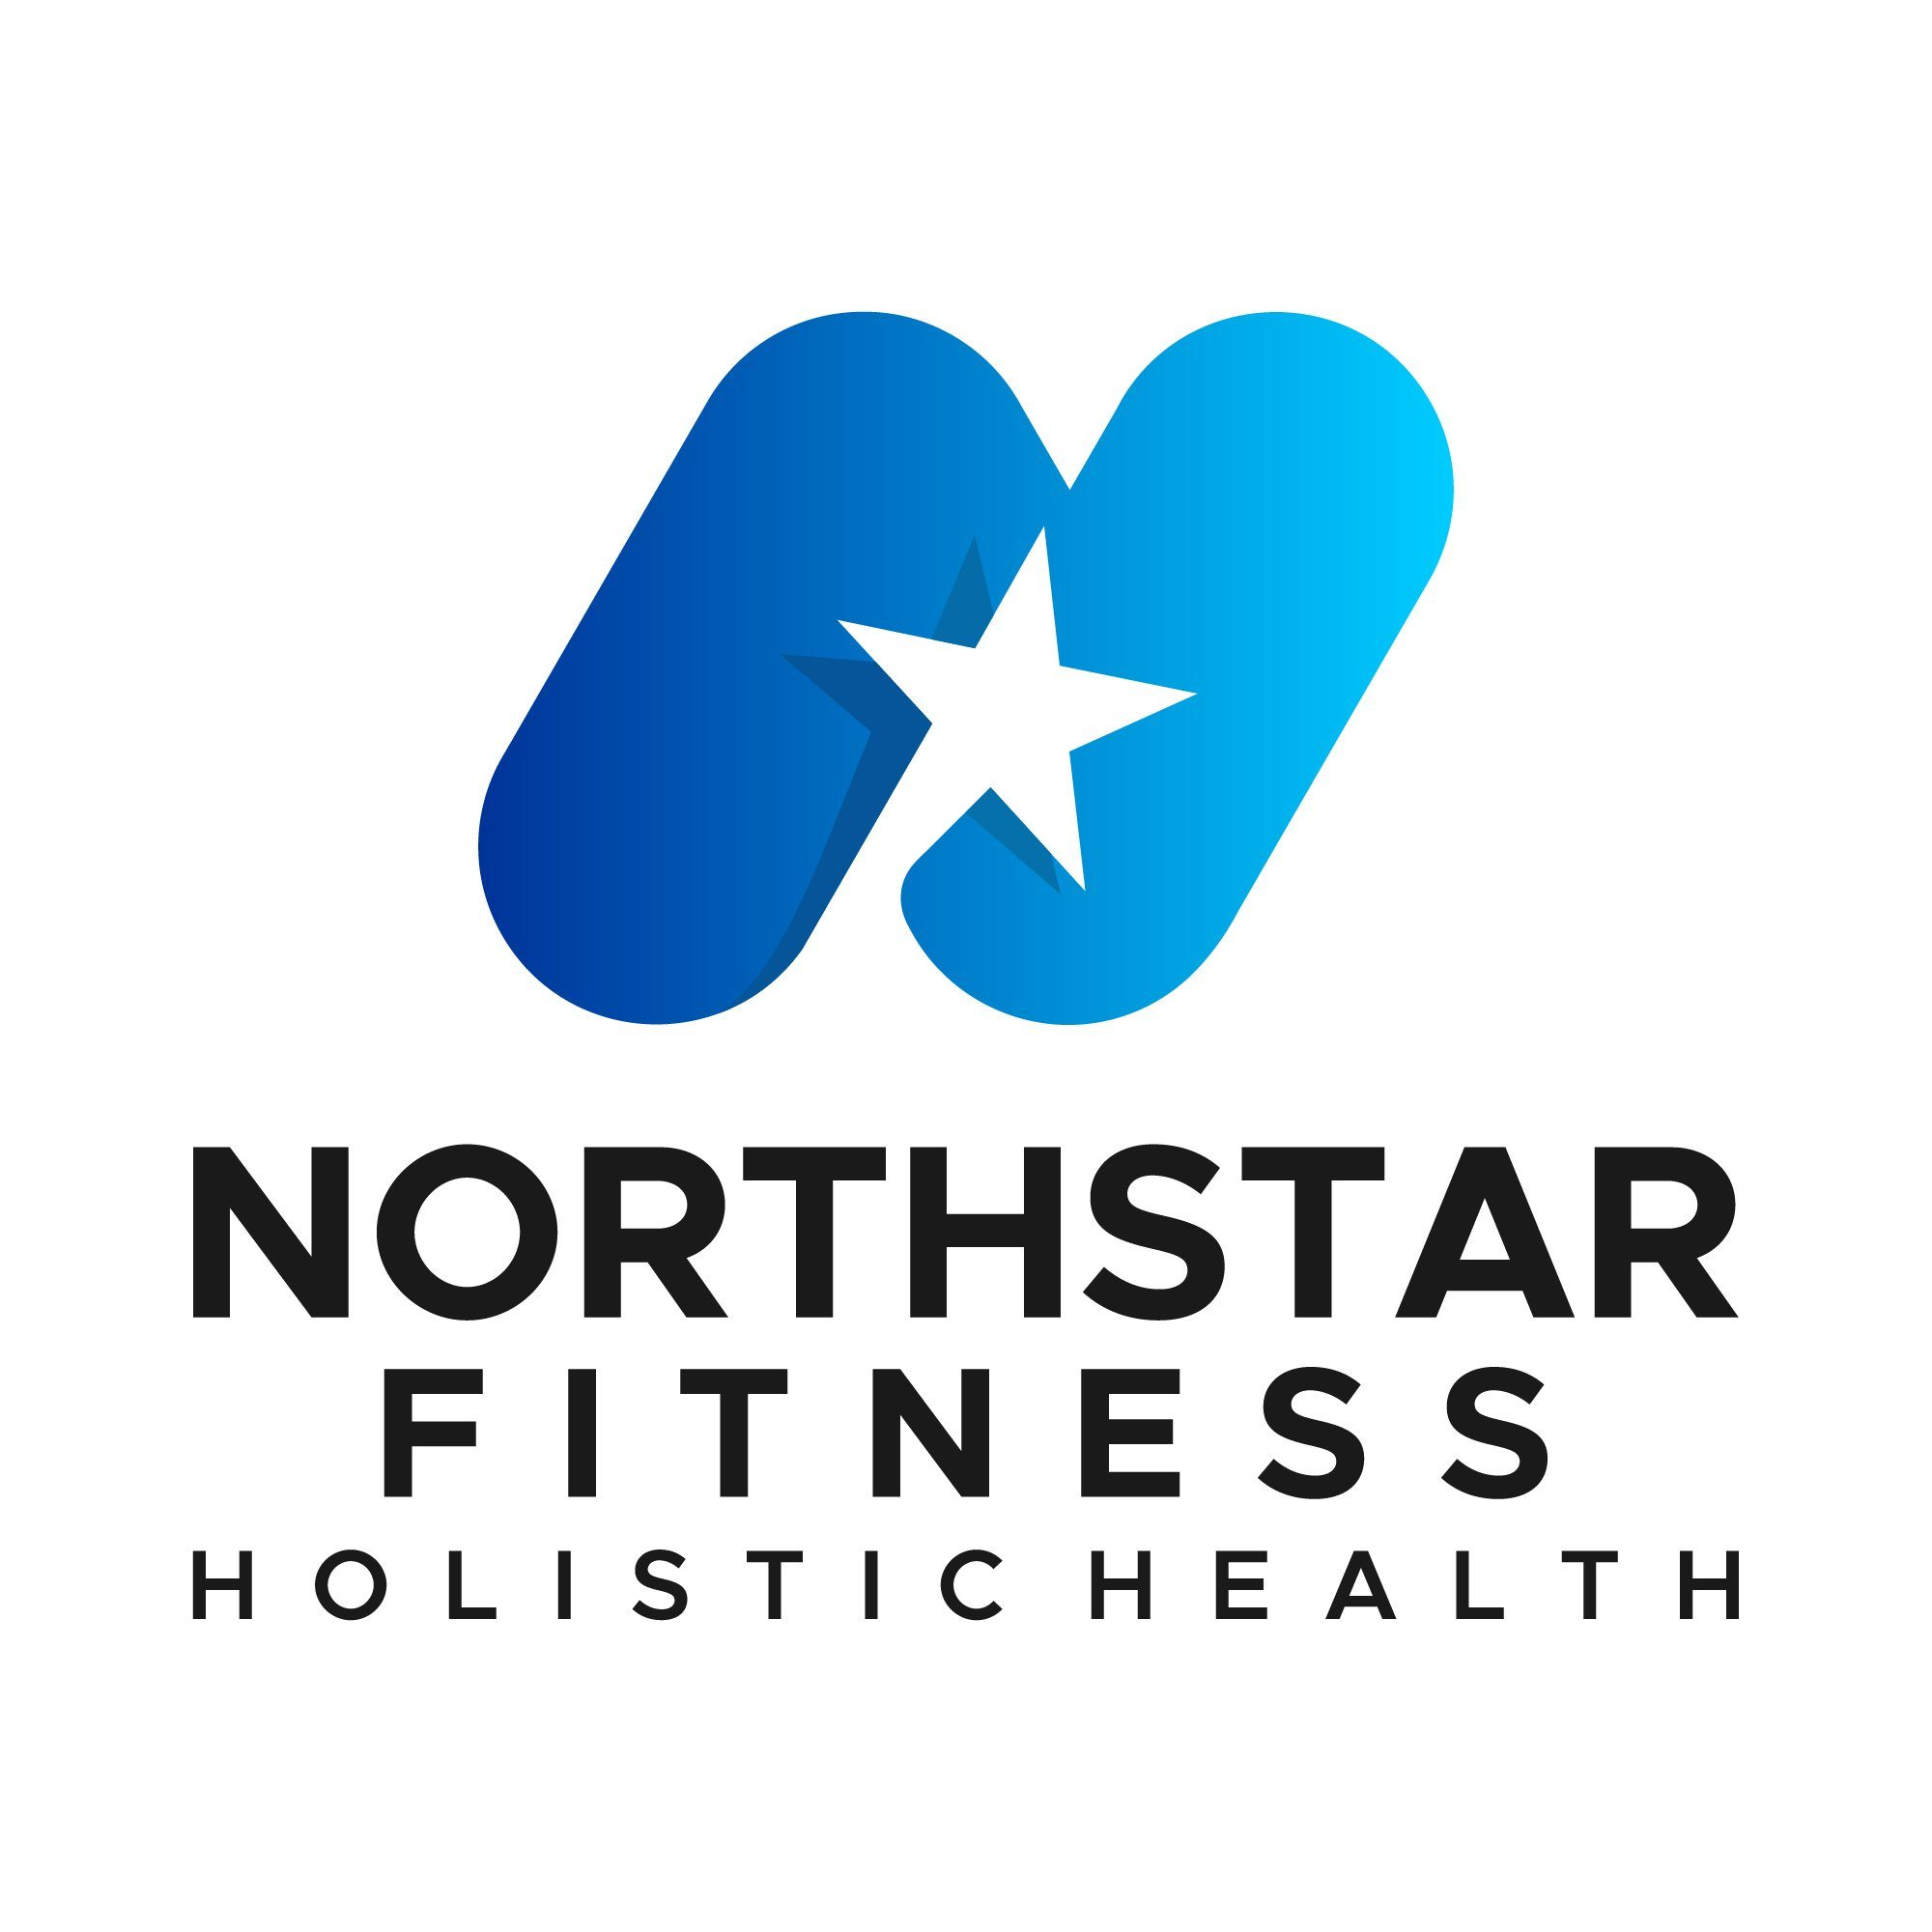 Northstar Fitness